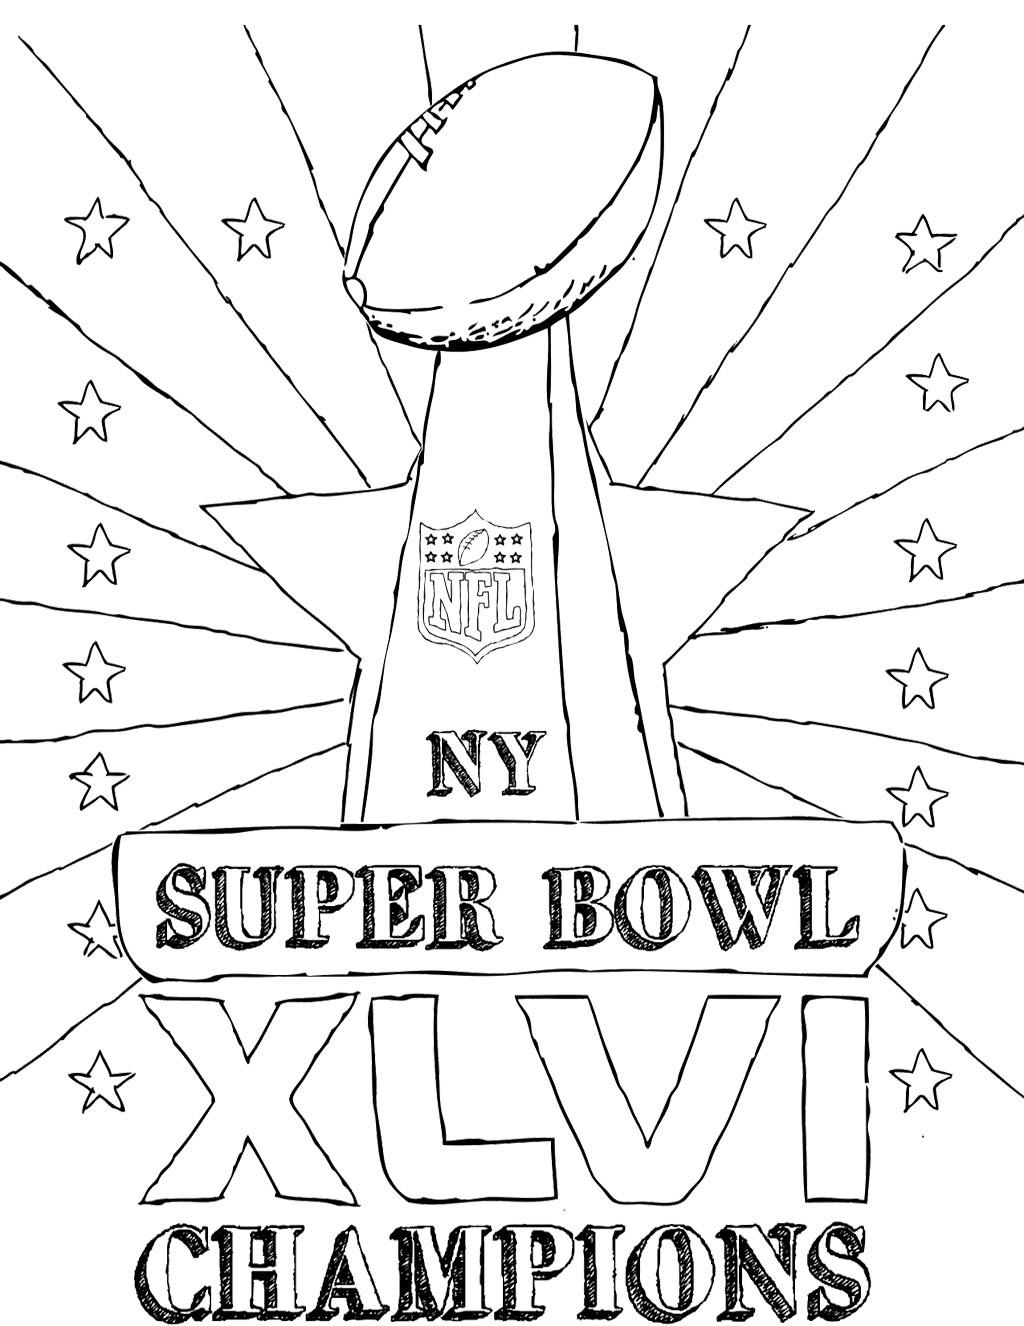 superbowl coloring pages for kids | Super Bowl Drawing at GetDrawings.com | Free for personal ...